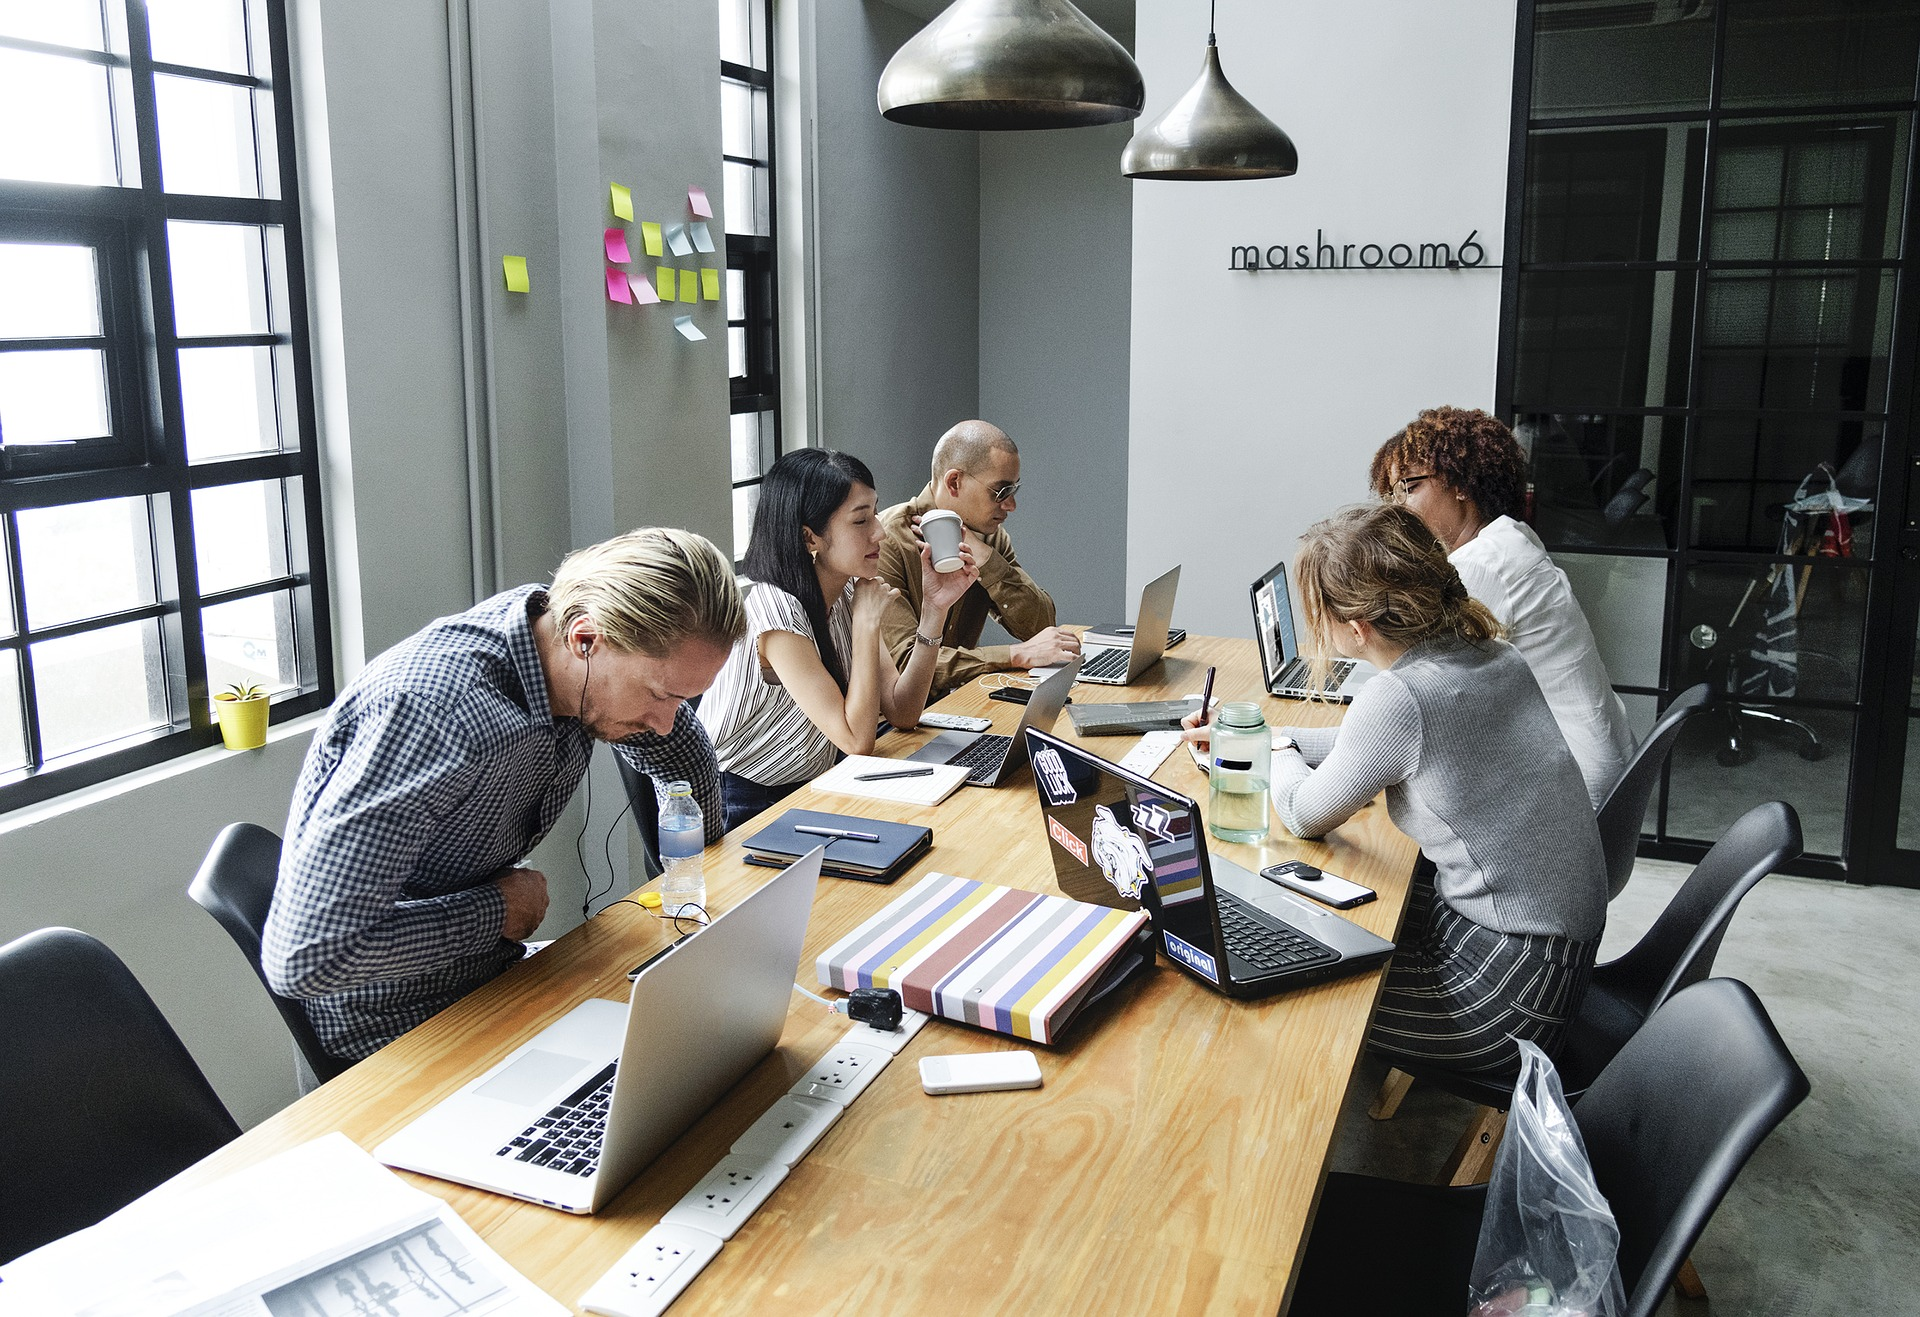 5 Simple Solutions to Enhance Company Culture